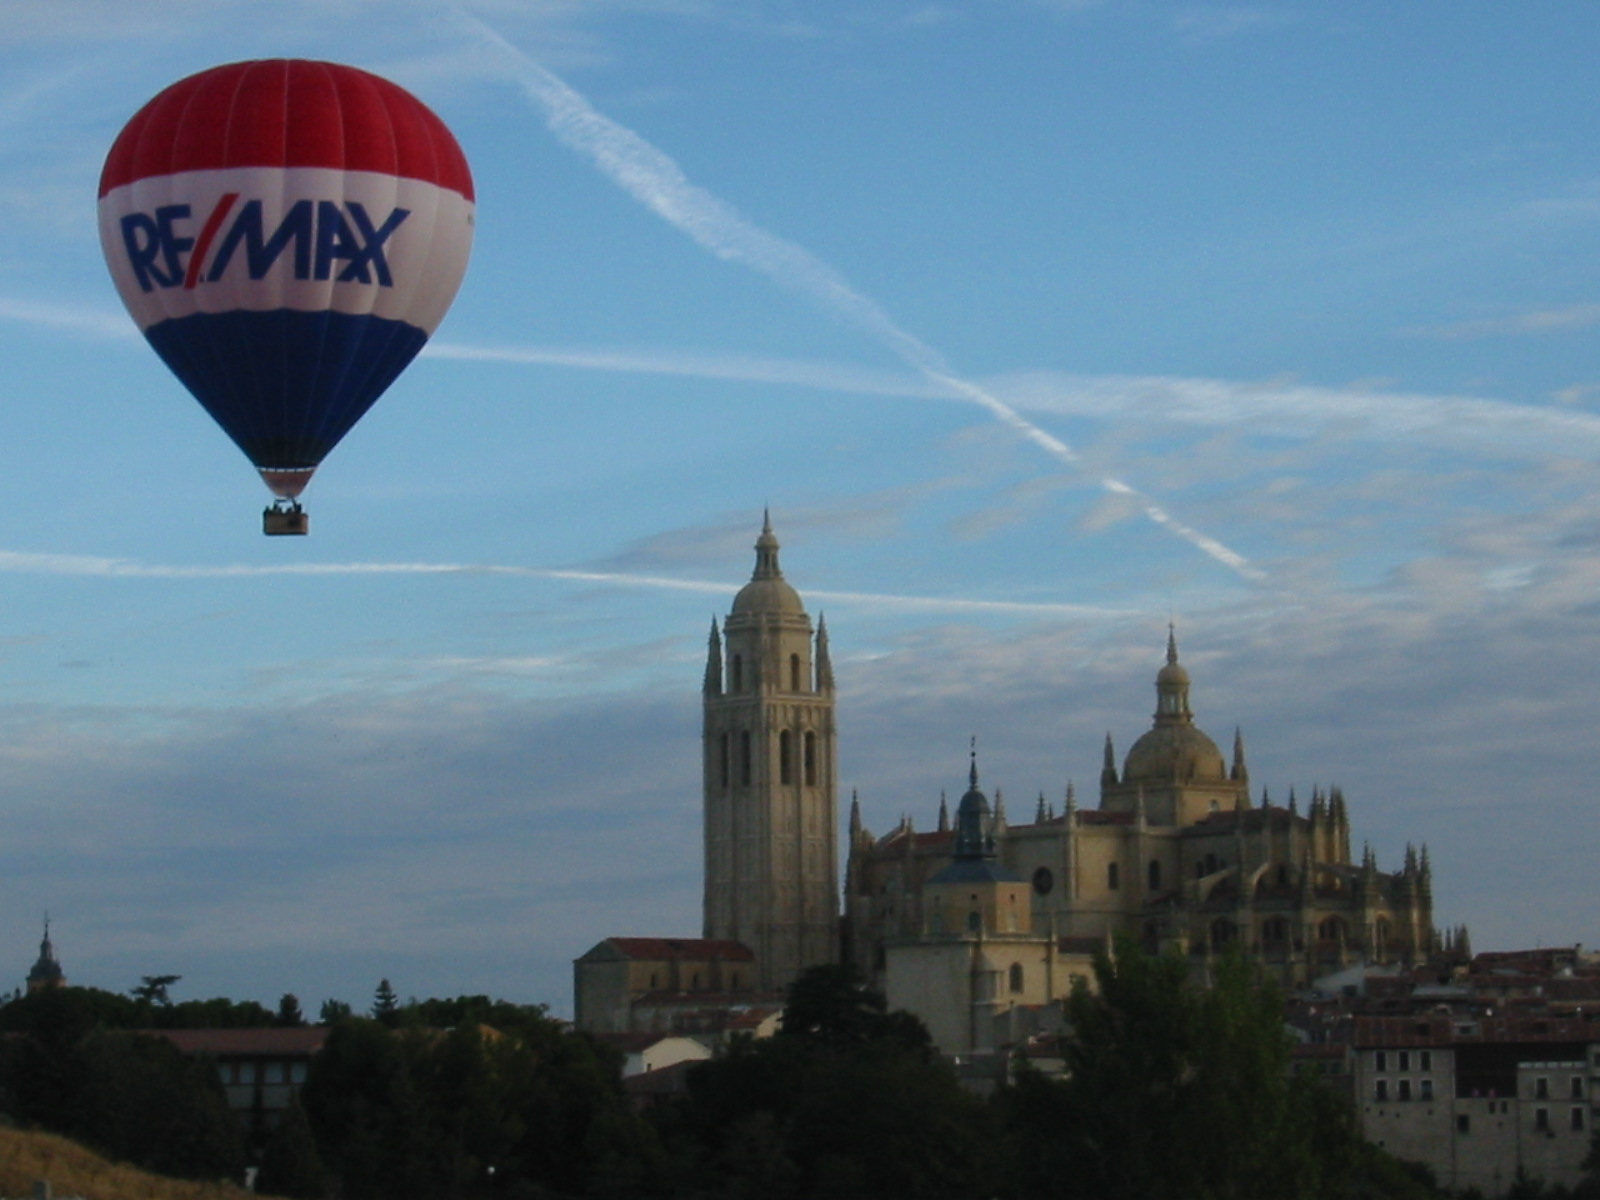 Hot Air Balloon Rides In Costa Brava